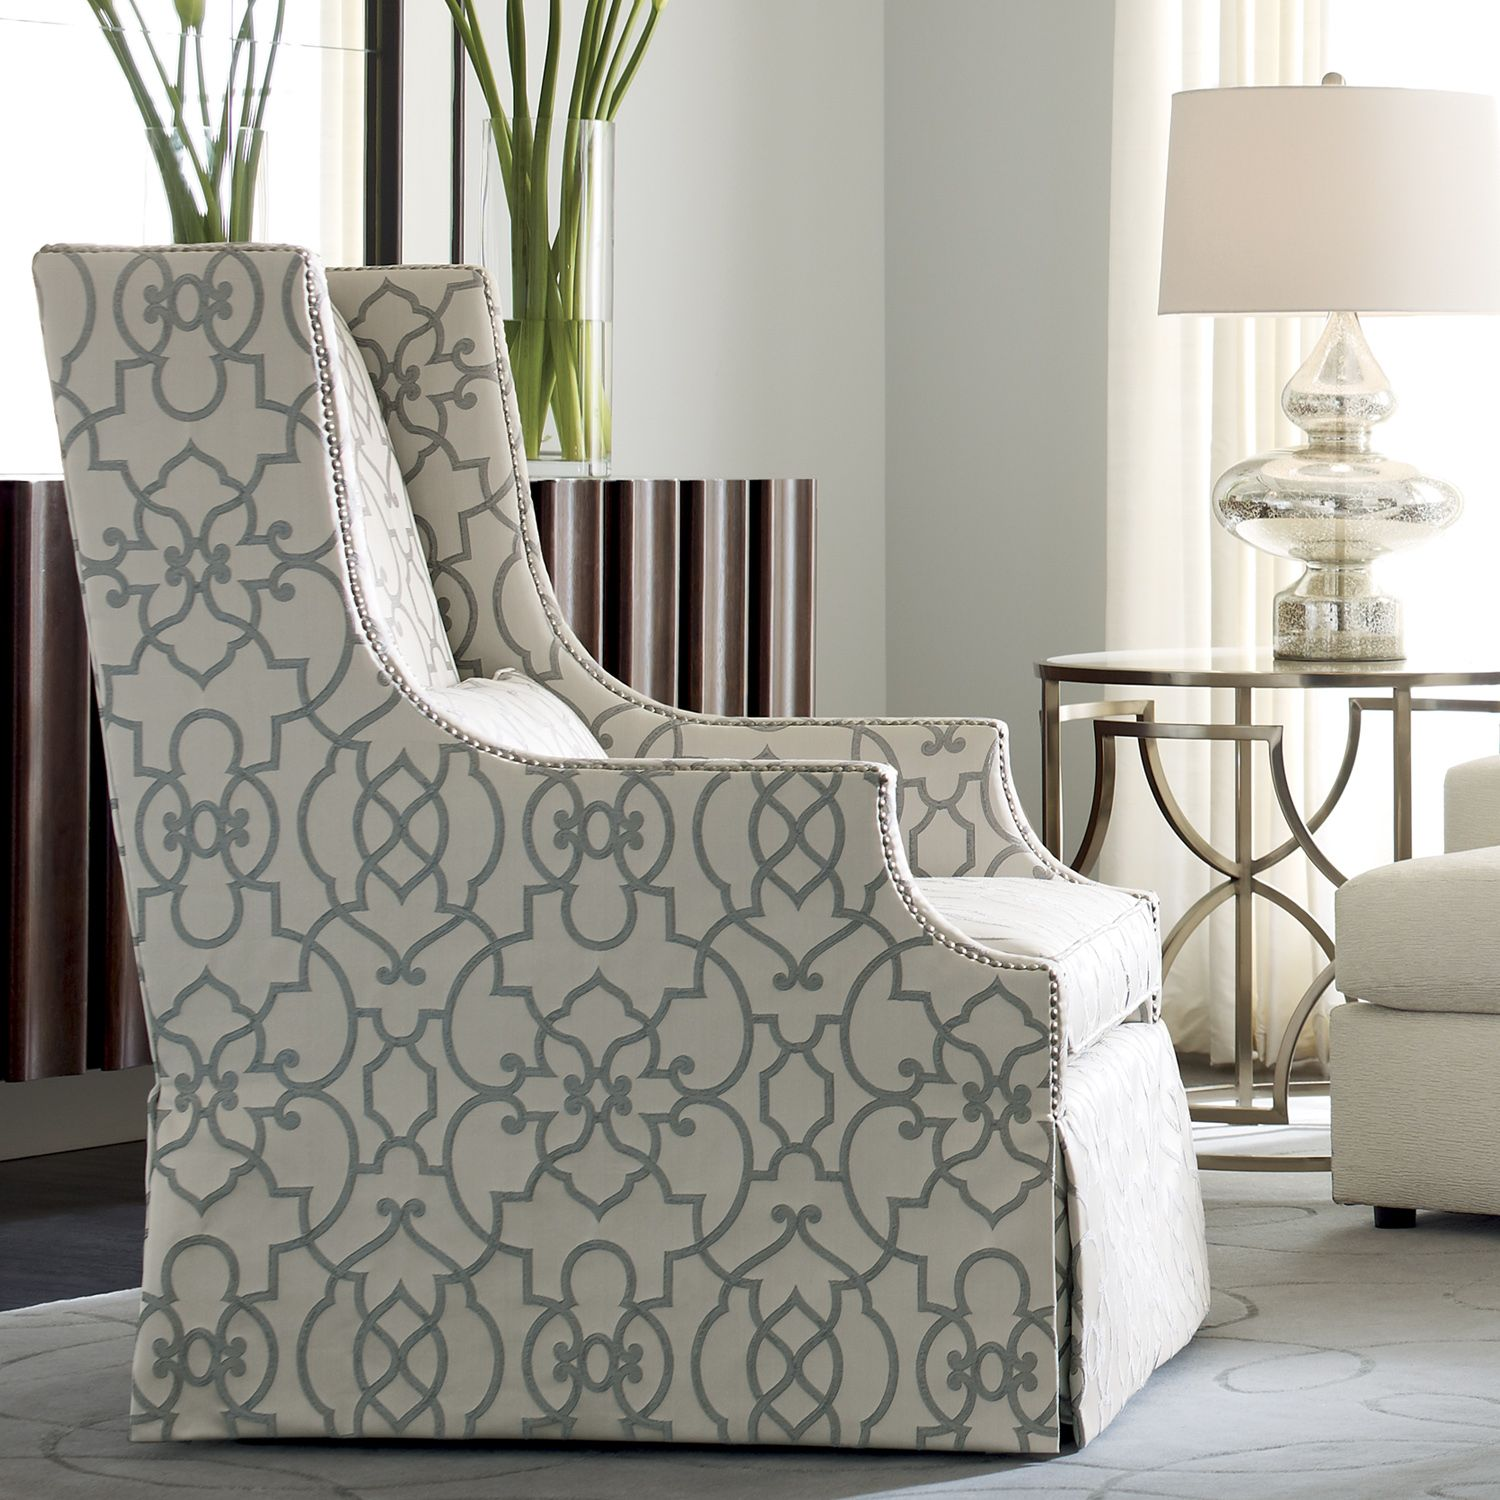 Darbin Chair, In Soft Luster Gray Woven With Large Scale Tracery Pattern,